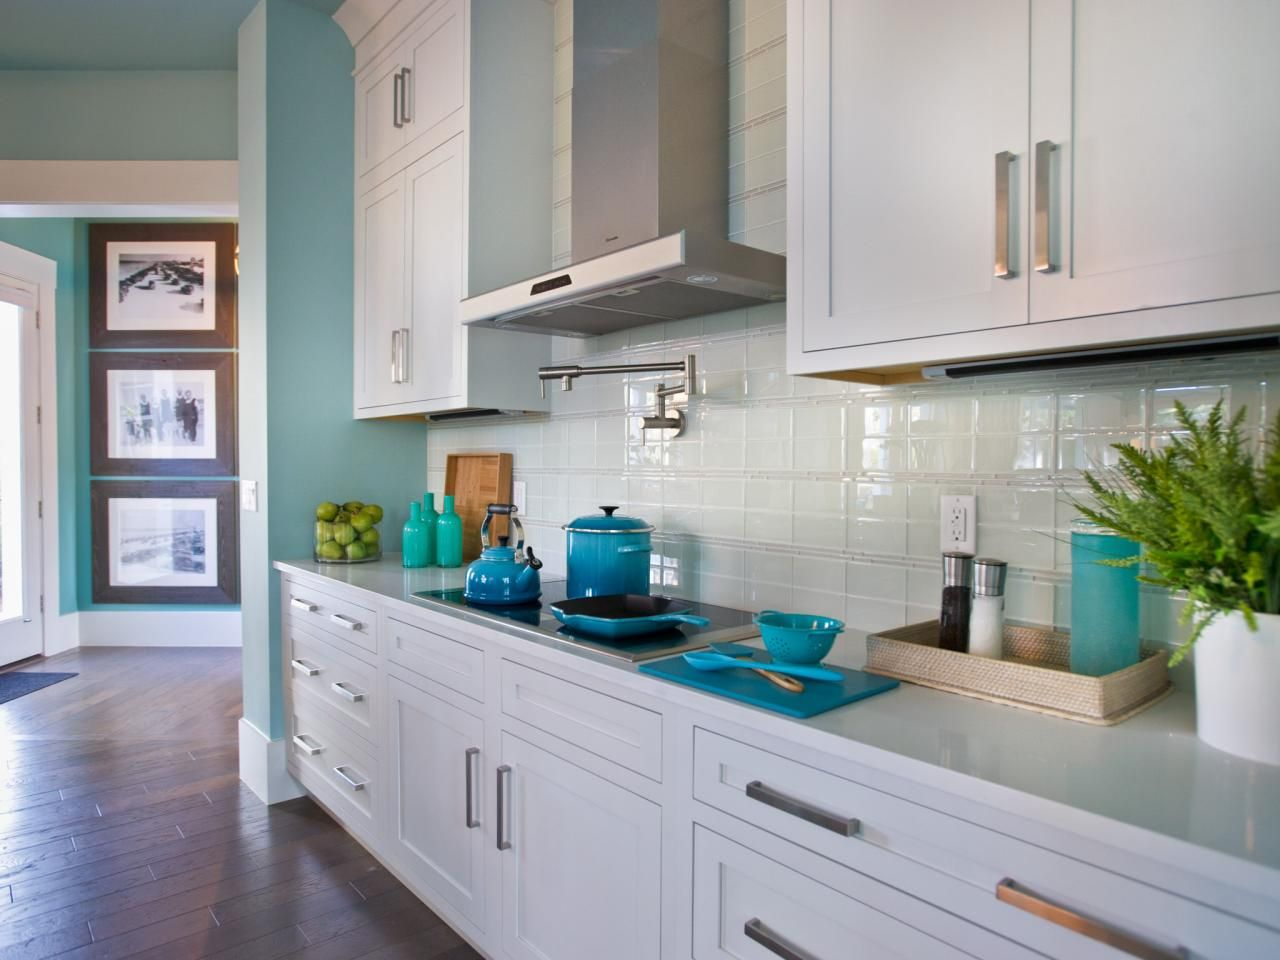 Glass Tile Backsplash Ideas: Pictures & Tips From | White subway ...